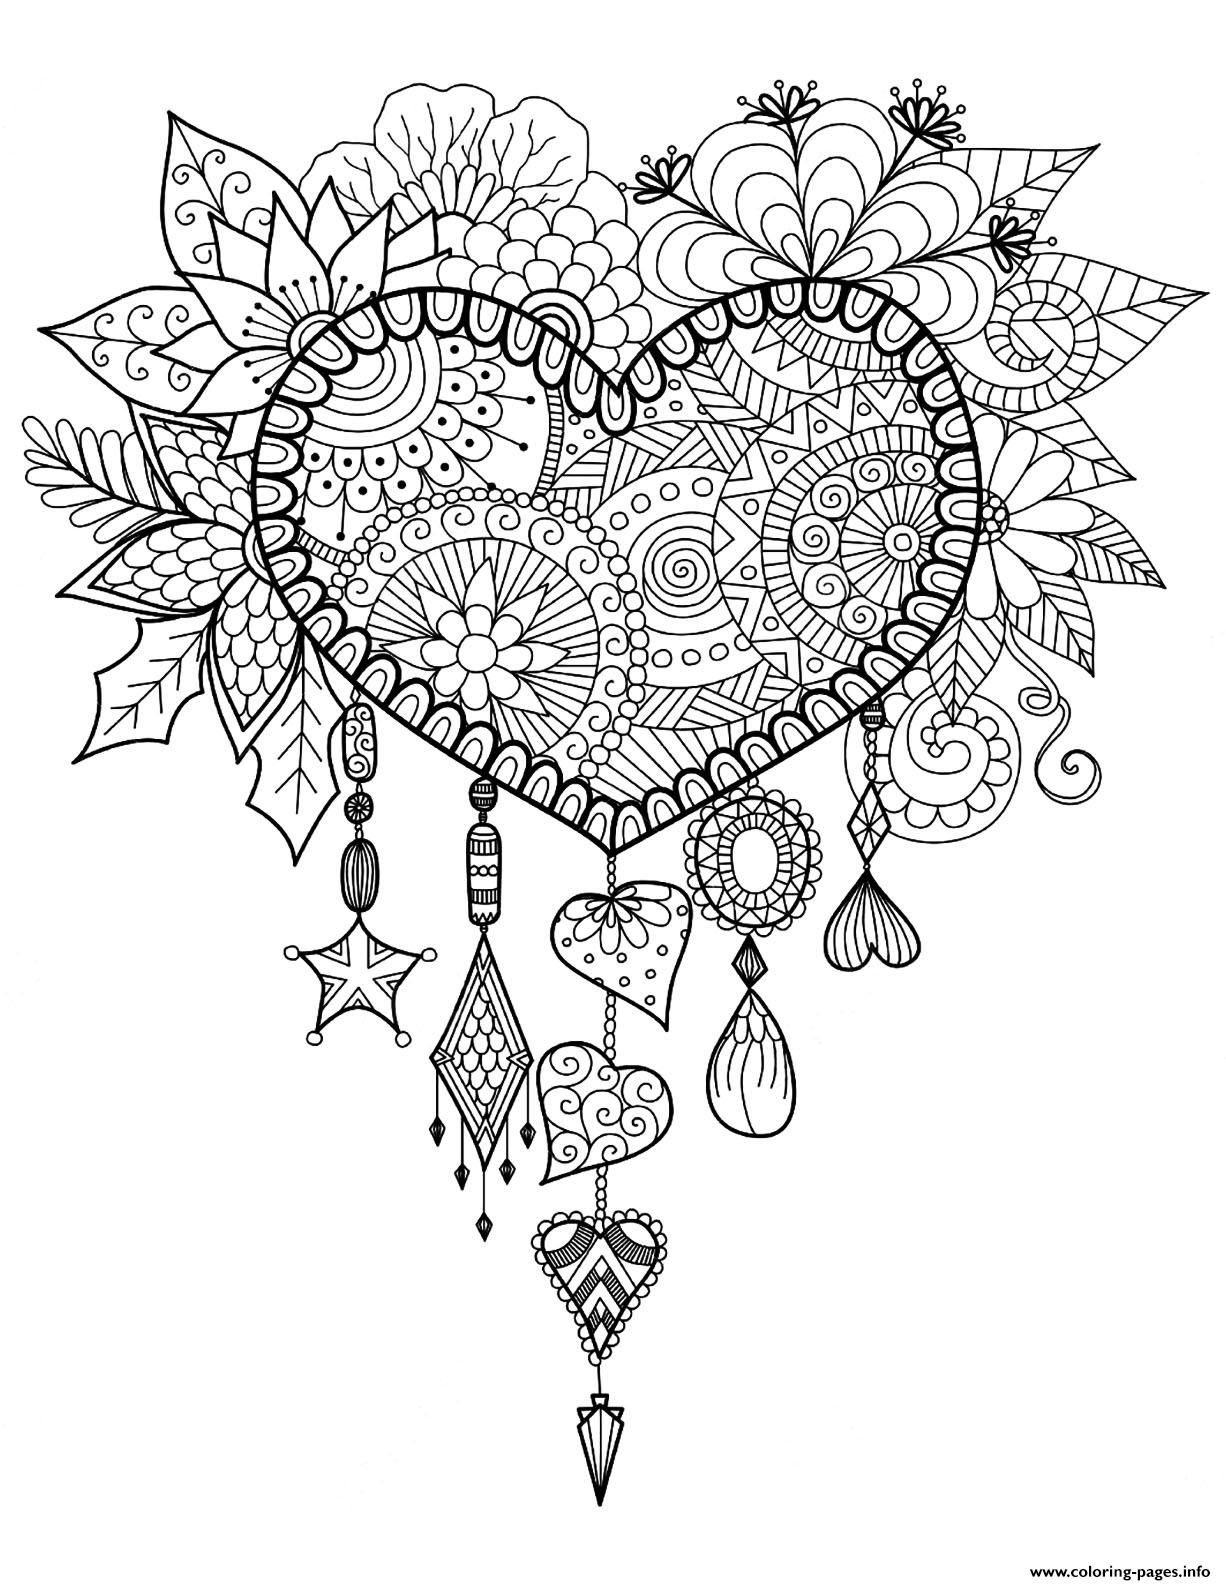 zen mandala coloring pages easy flower with leaves simple mandalas 100 mandalas mandala zen coloring pages